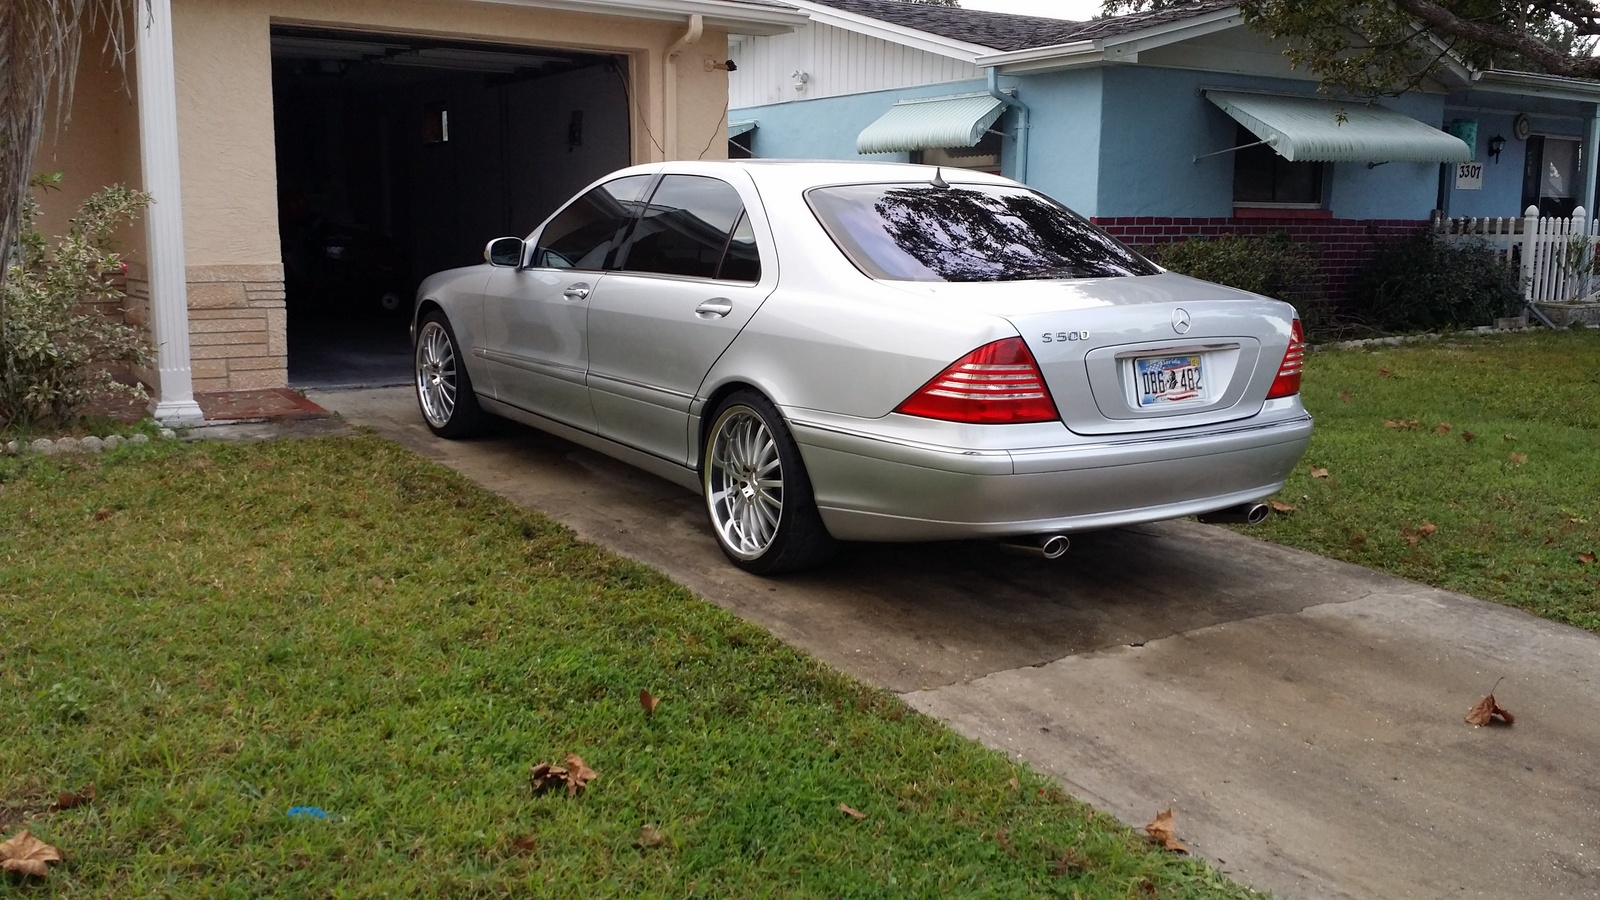 2000 mercedes s500 specifications pictures to pin on for 2001 mercedes benz s500 specs